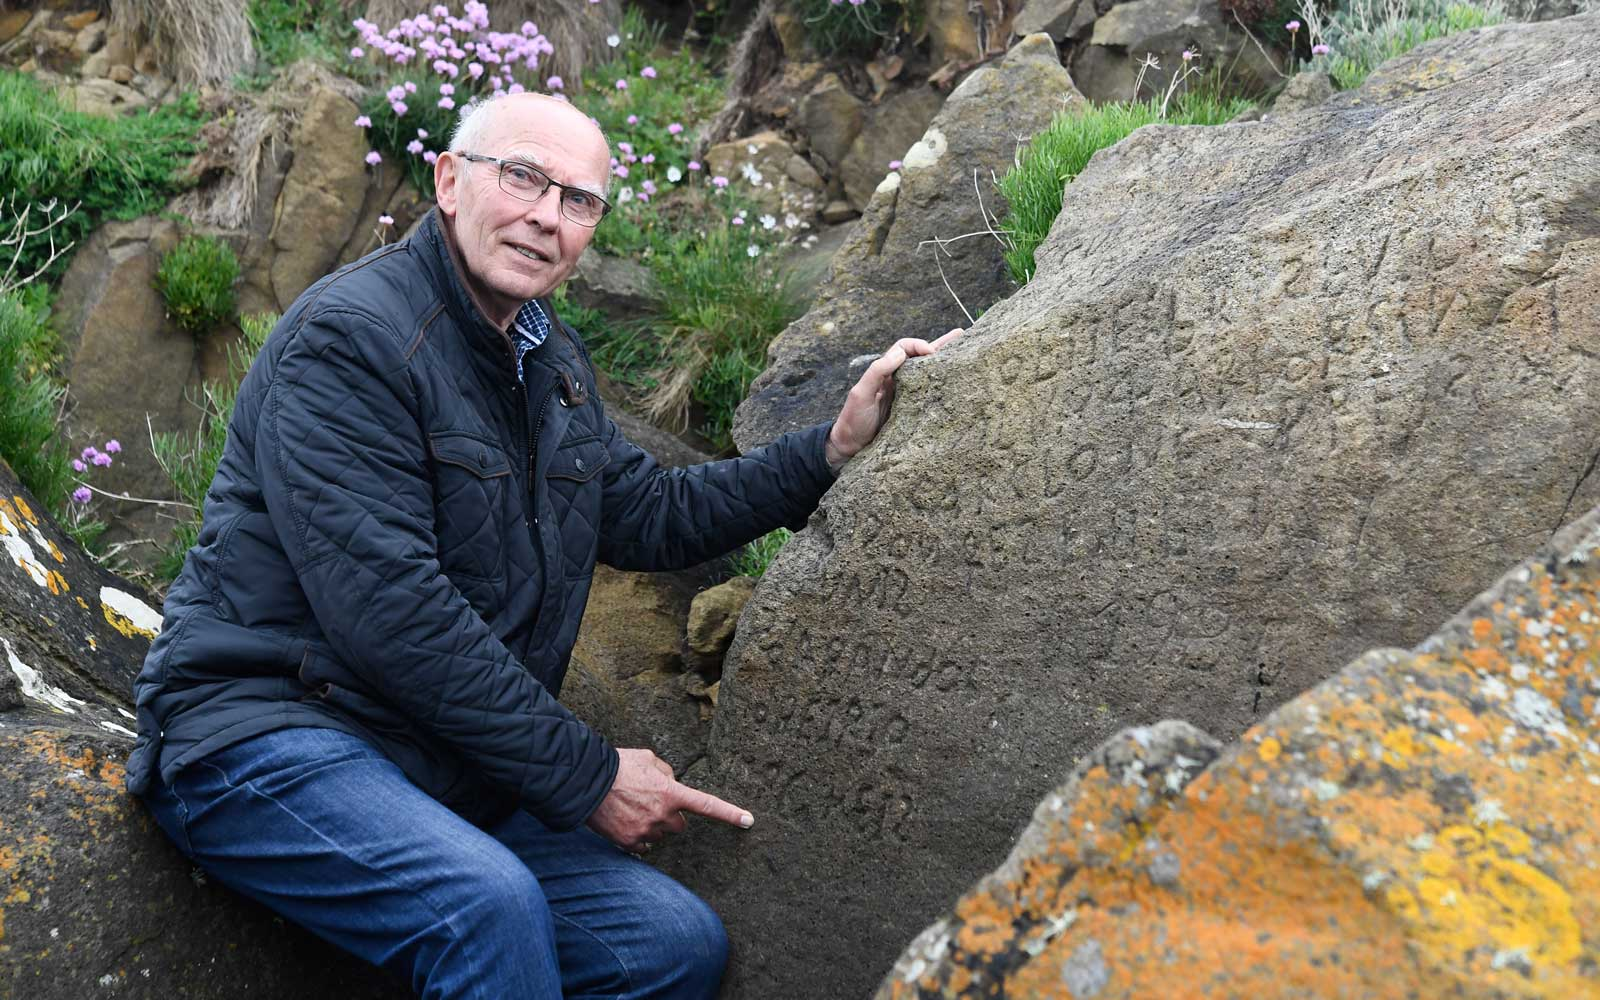 They Offer 2,000 Euros To Anyone Who Can Decipher The Mysterious Message Carved On An Ancient Stone